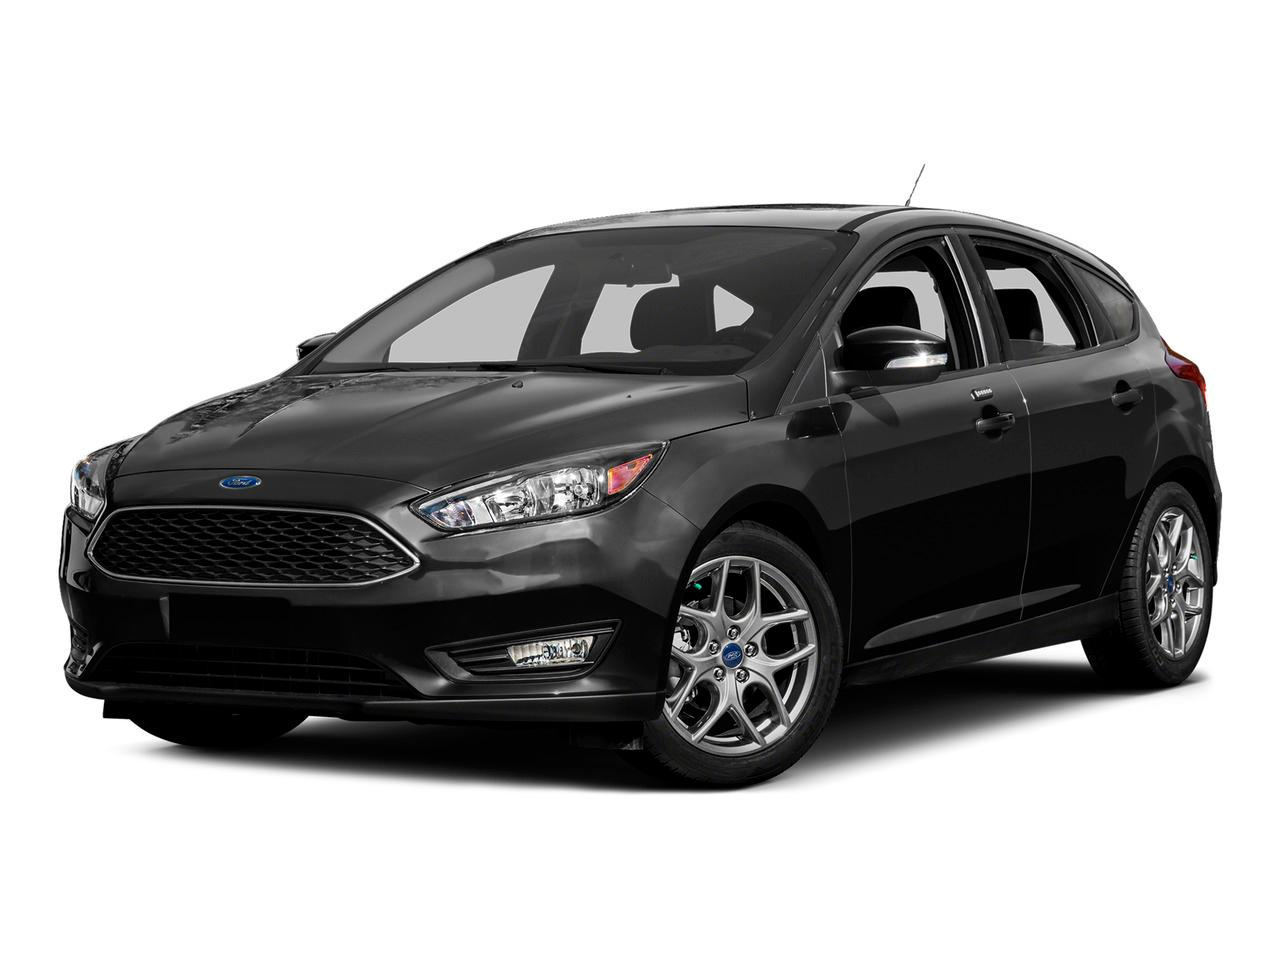 2015 Ford Focus Vehicle Photo in Lewisville, TX 75067